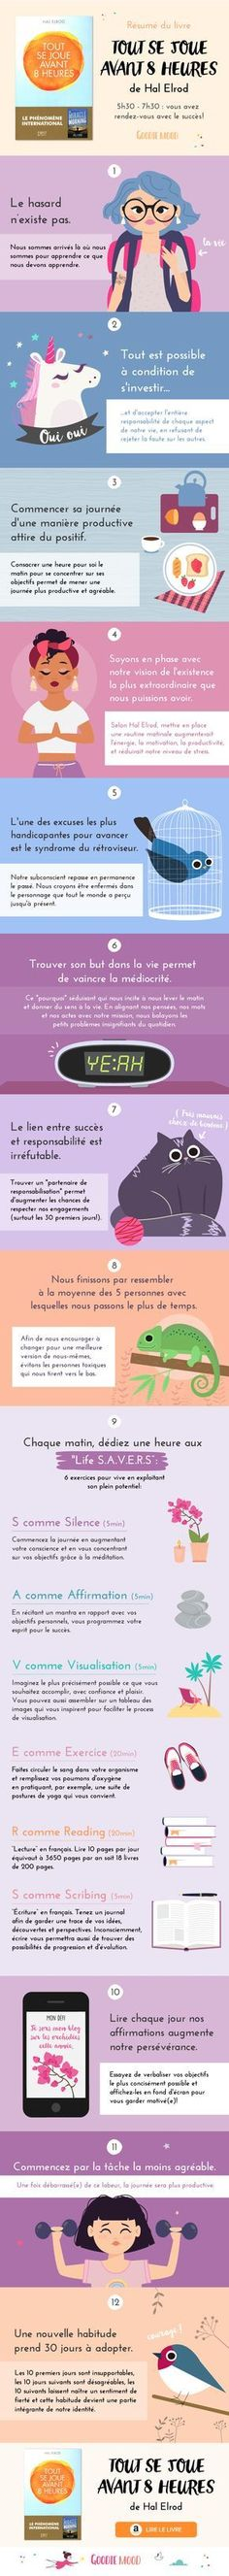 Psychology infographic and charts miracle morning tout se joue avant 8 heures resume du livre Infographic Description miracle morning tout se joue avant 8